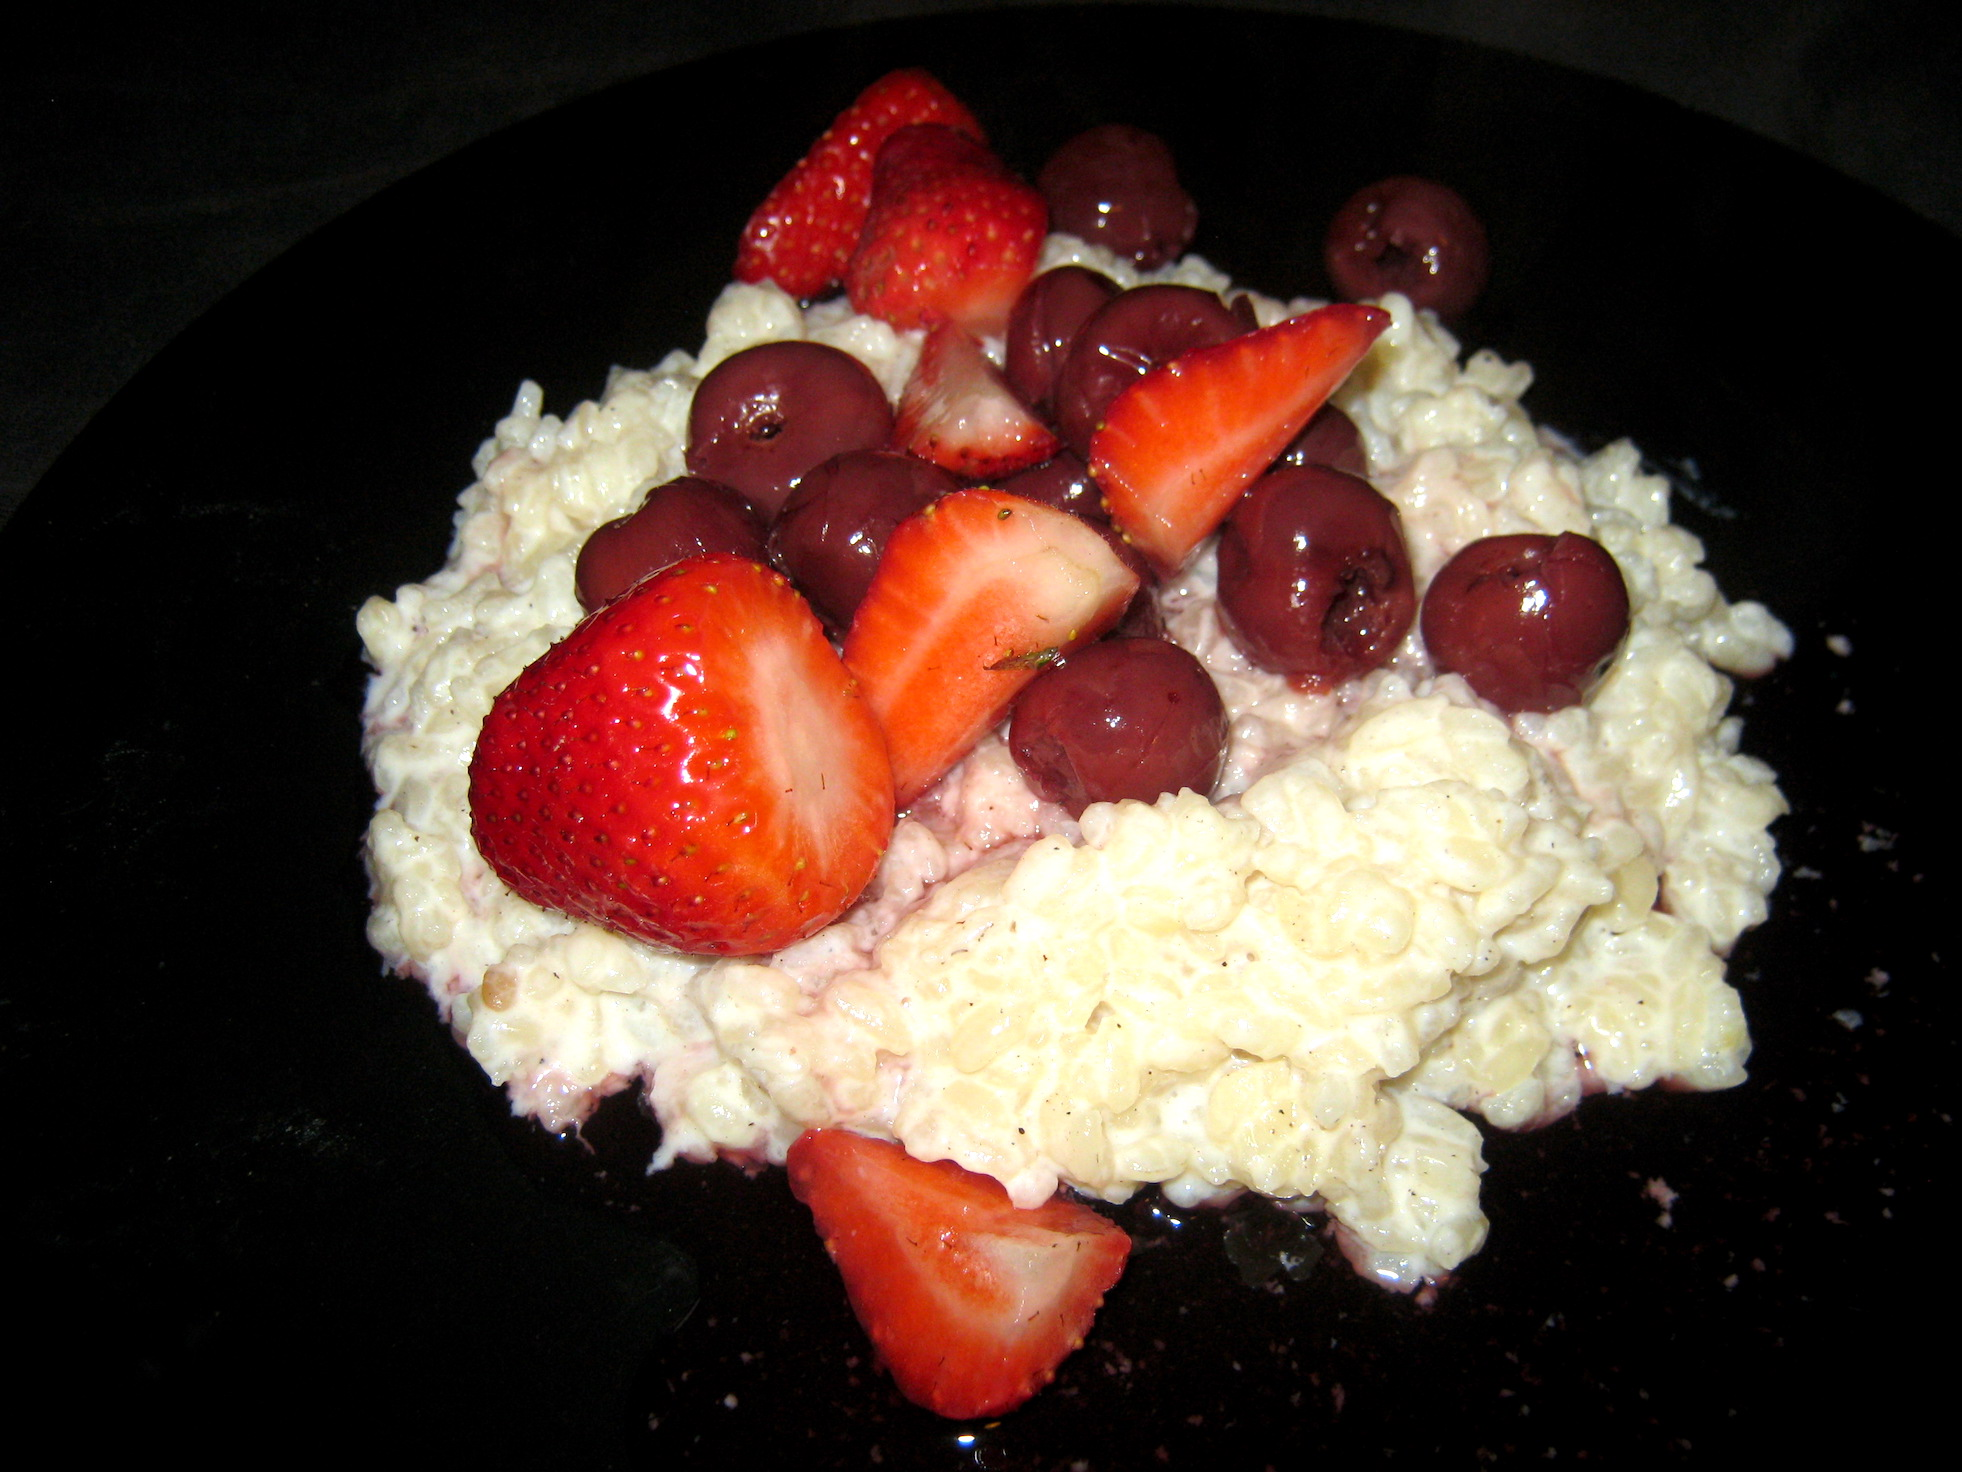 Omas Milchreis / Rice pudding with strawberries and cherries